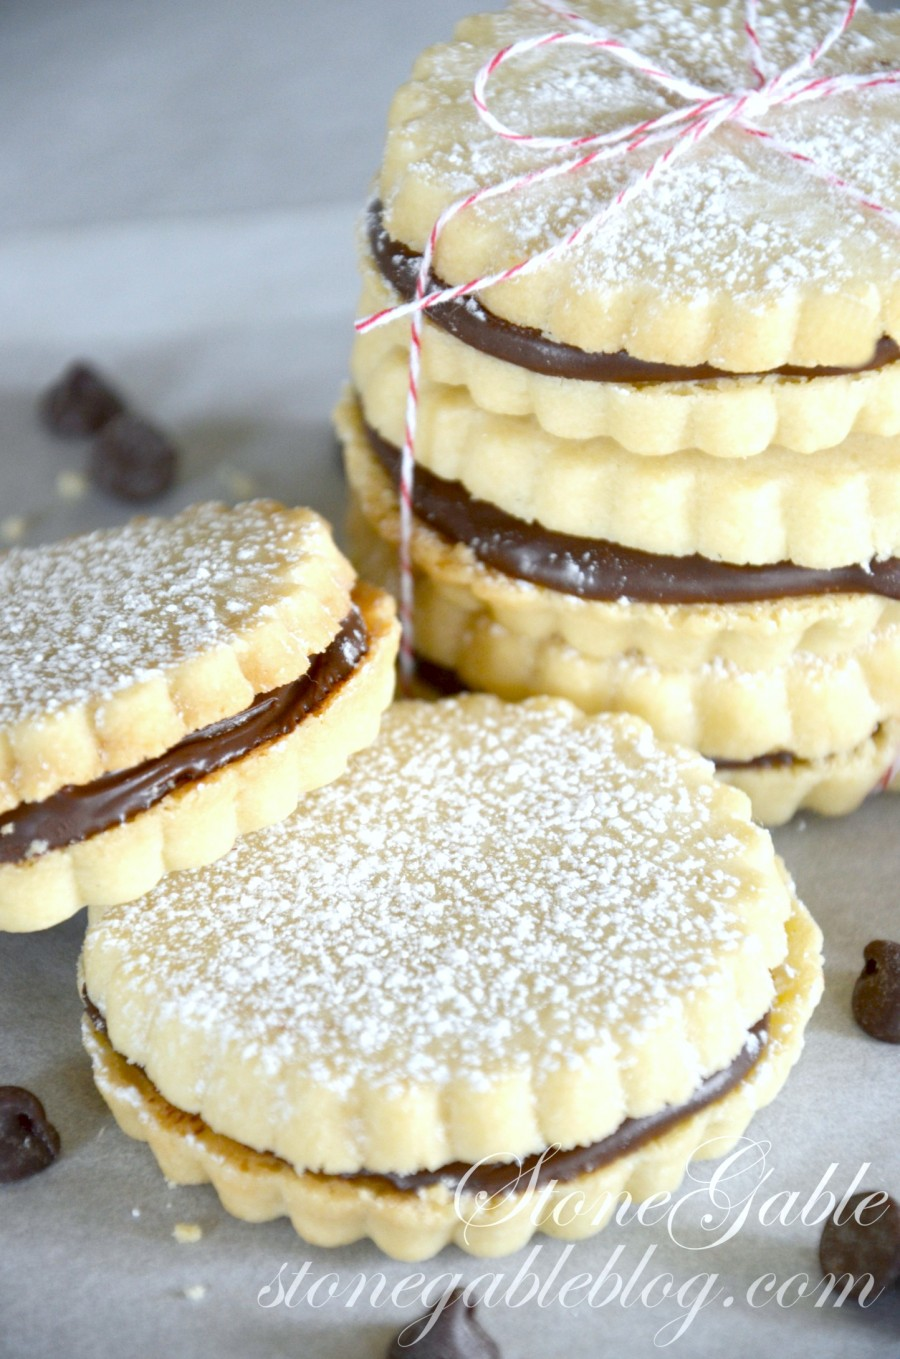 CHOCOLATE FILLED SHORTBREAD COOKIES- shortbreads- stongableblog.com